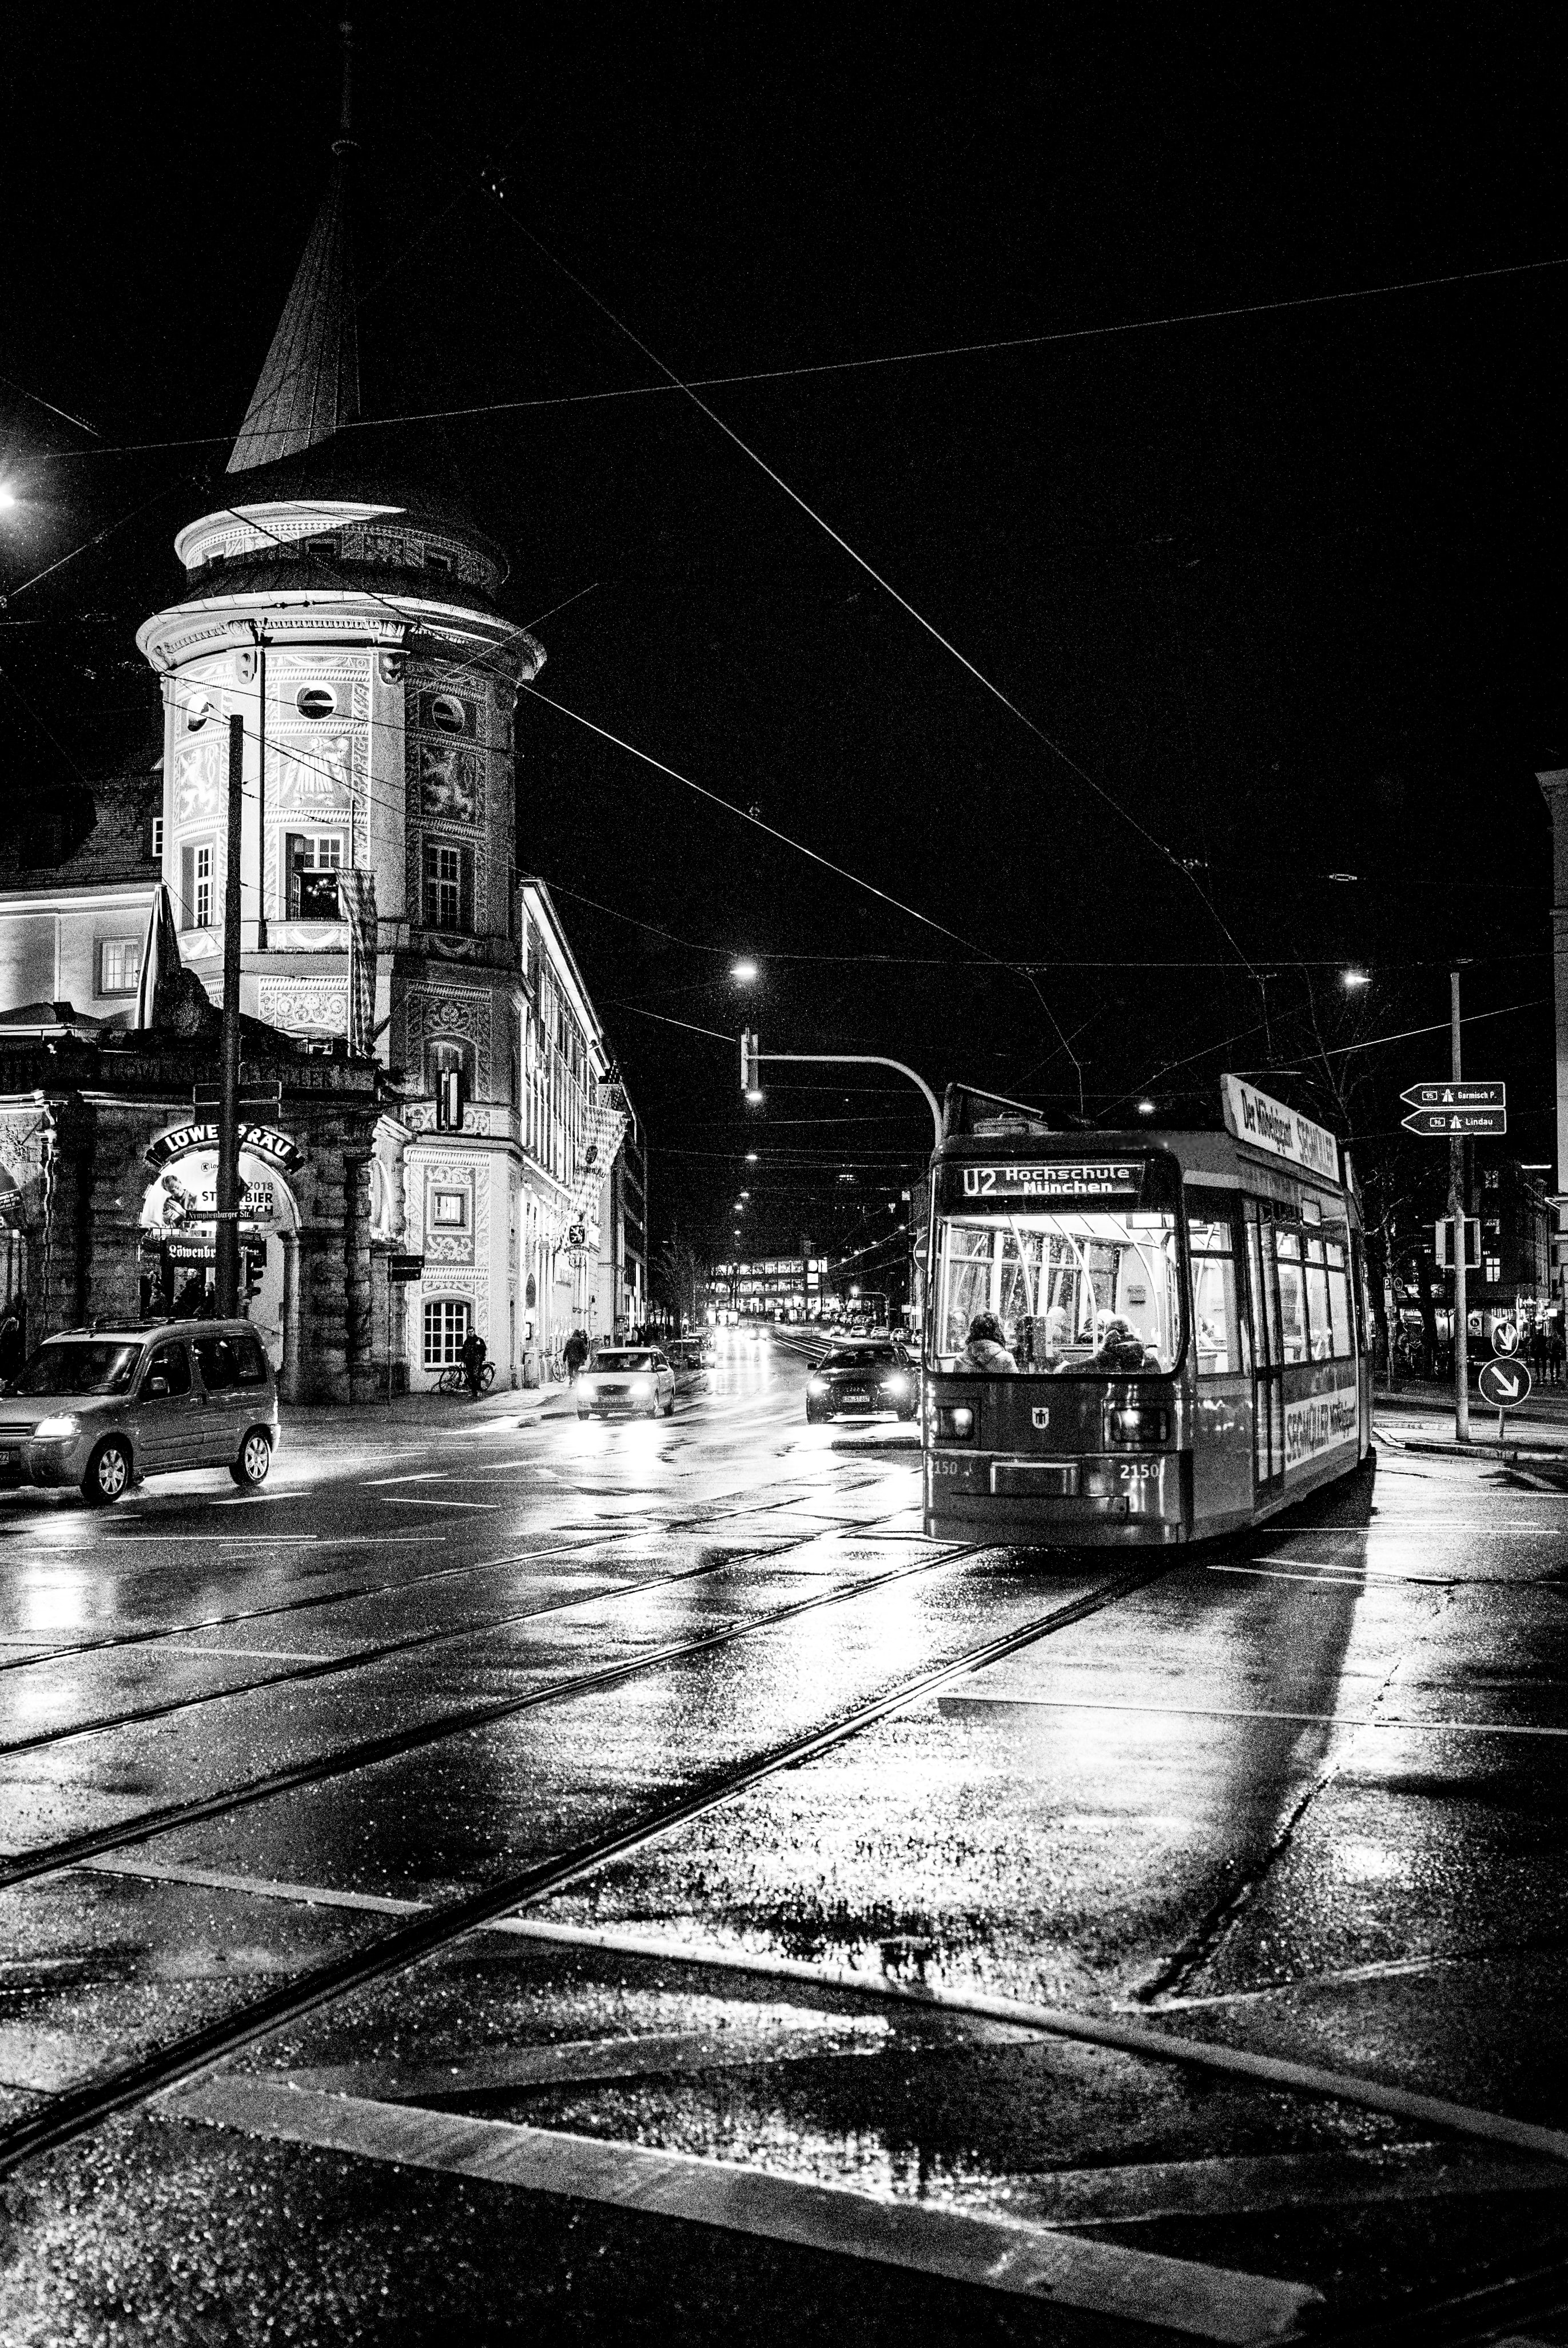 grayscale photography of tram near building